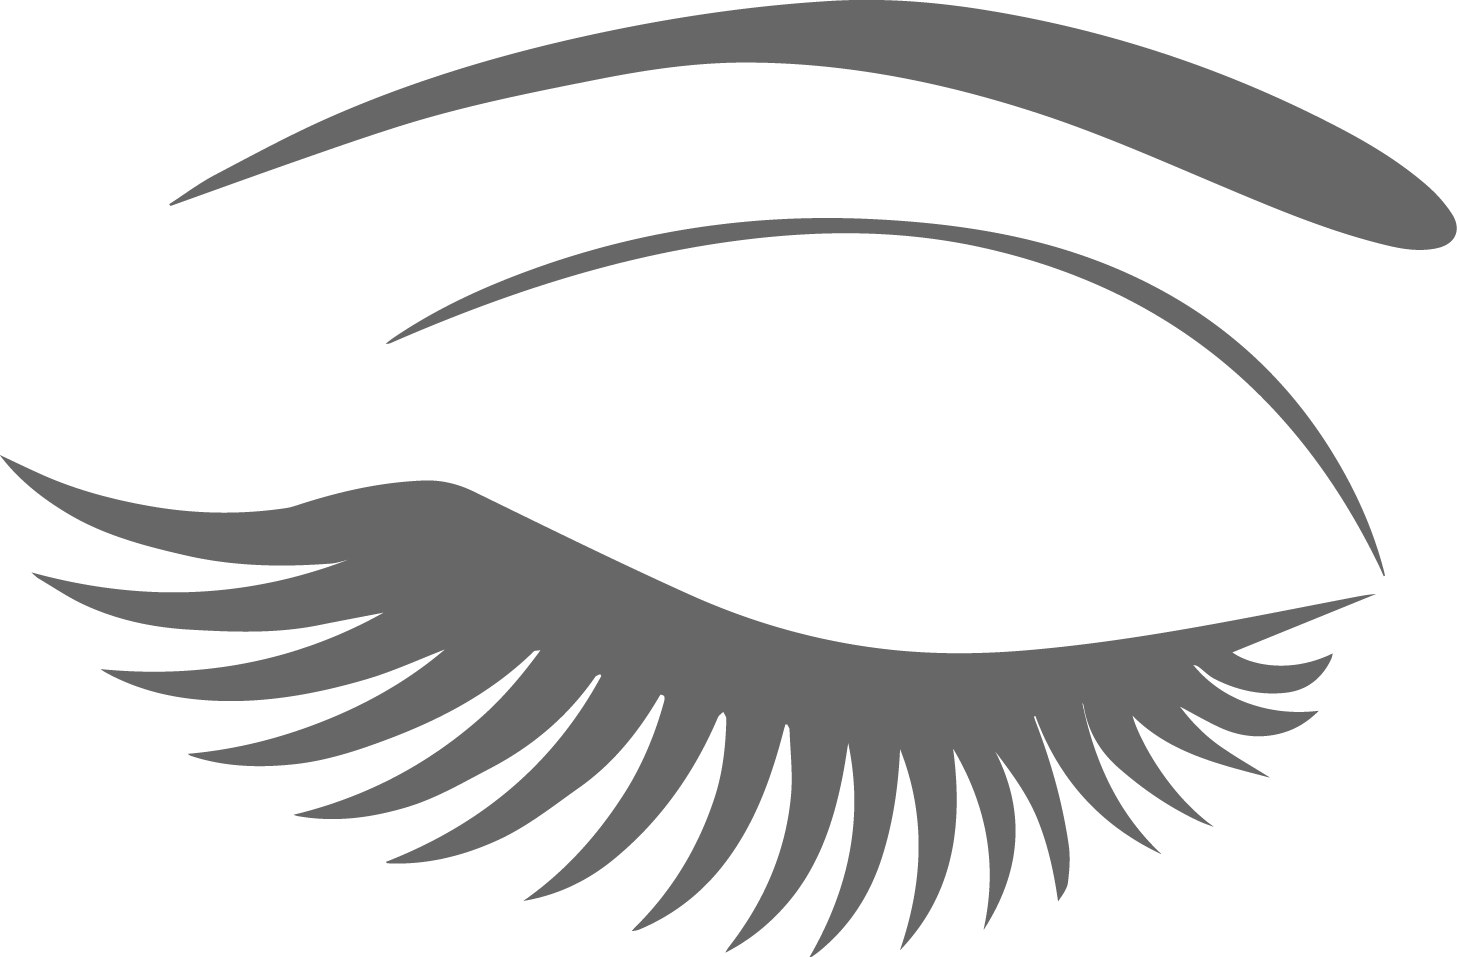 1457x957 Collection Of Free Wings Drawing Eyeball Download On Ui Ex